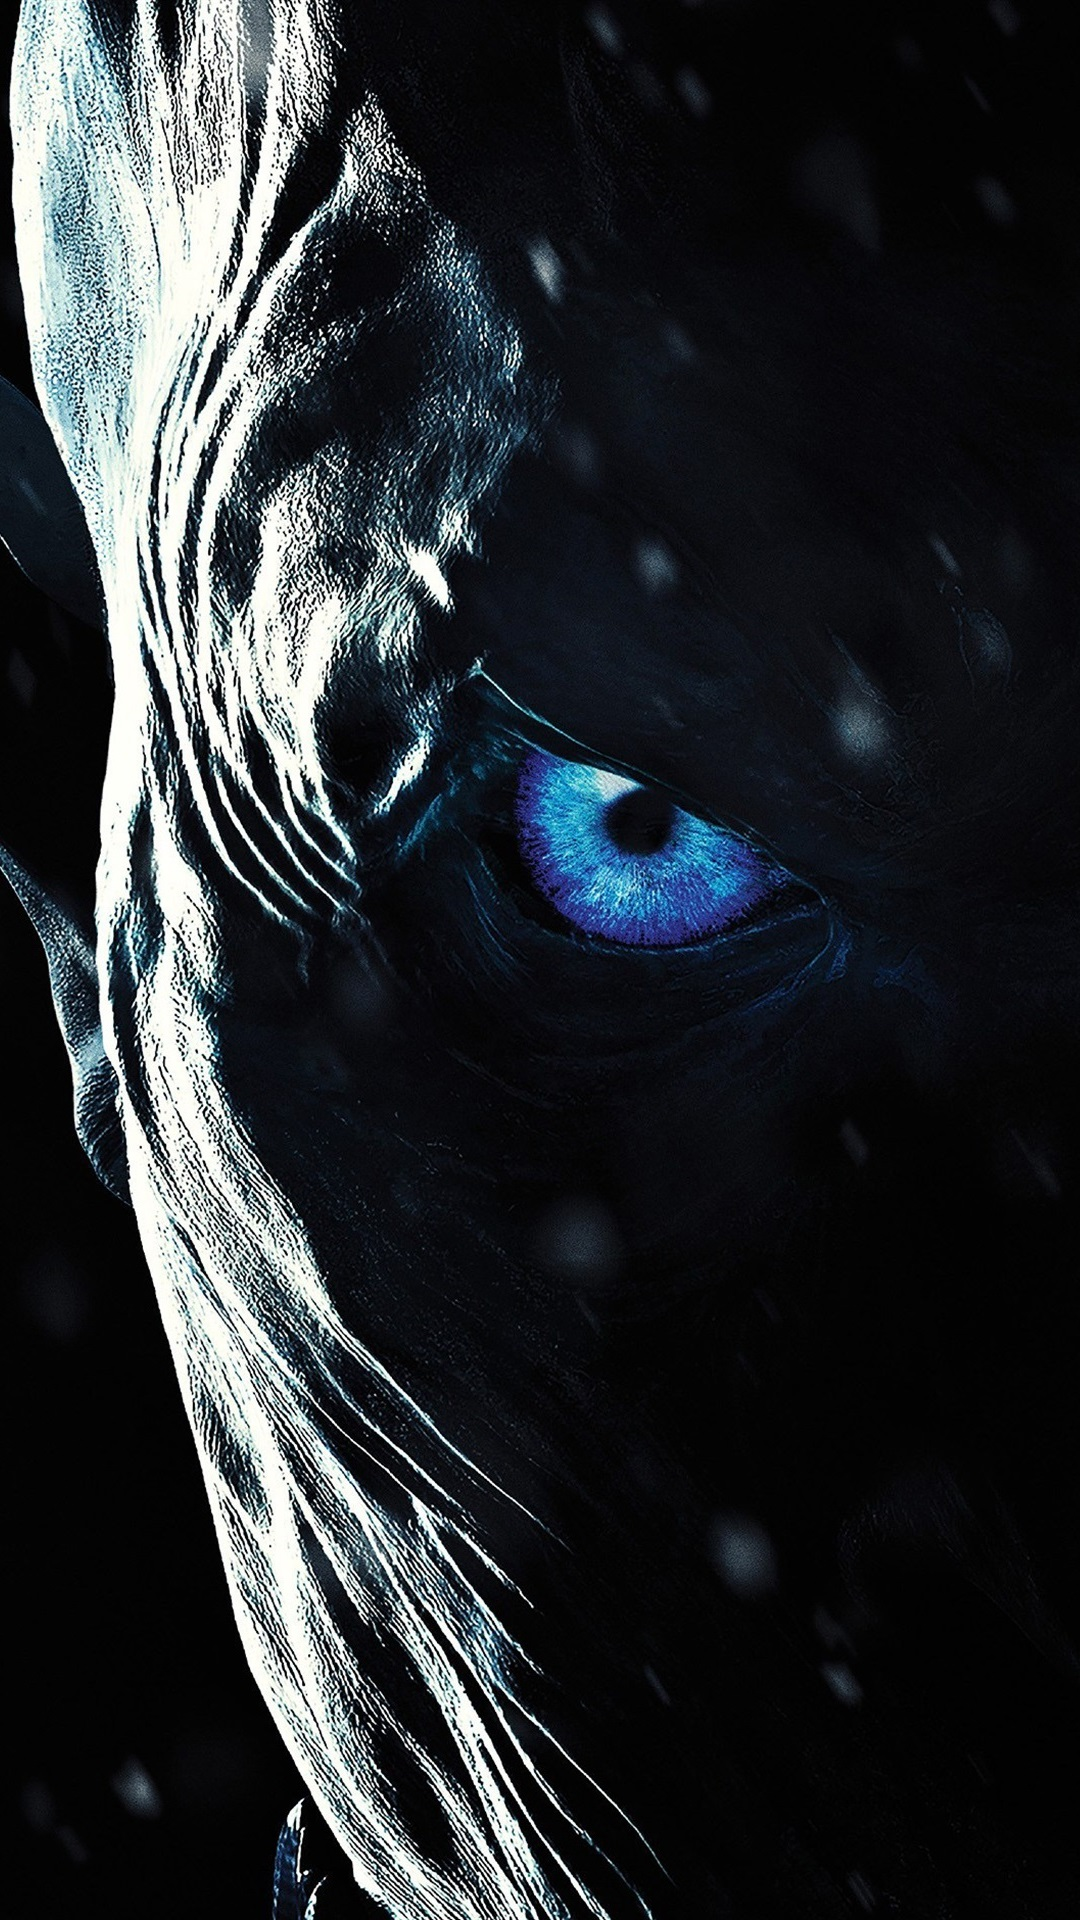 Game Of Thrones Season 7 1080x1920 Iphone 8766s Plus